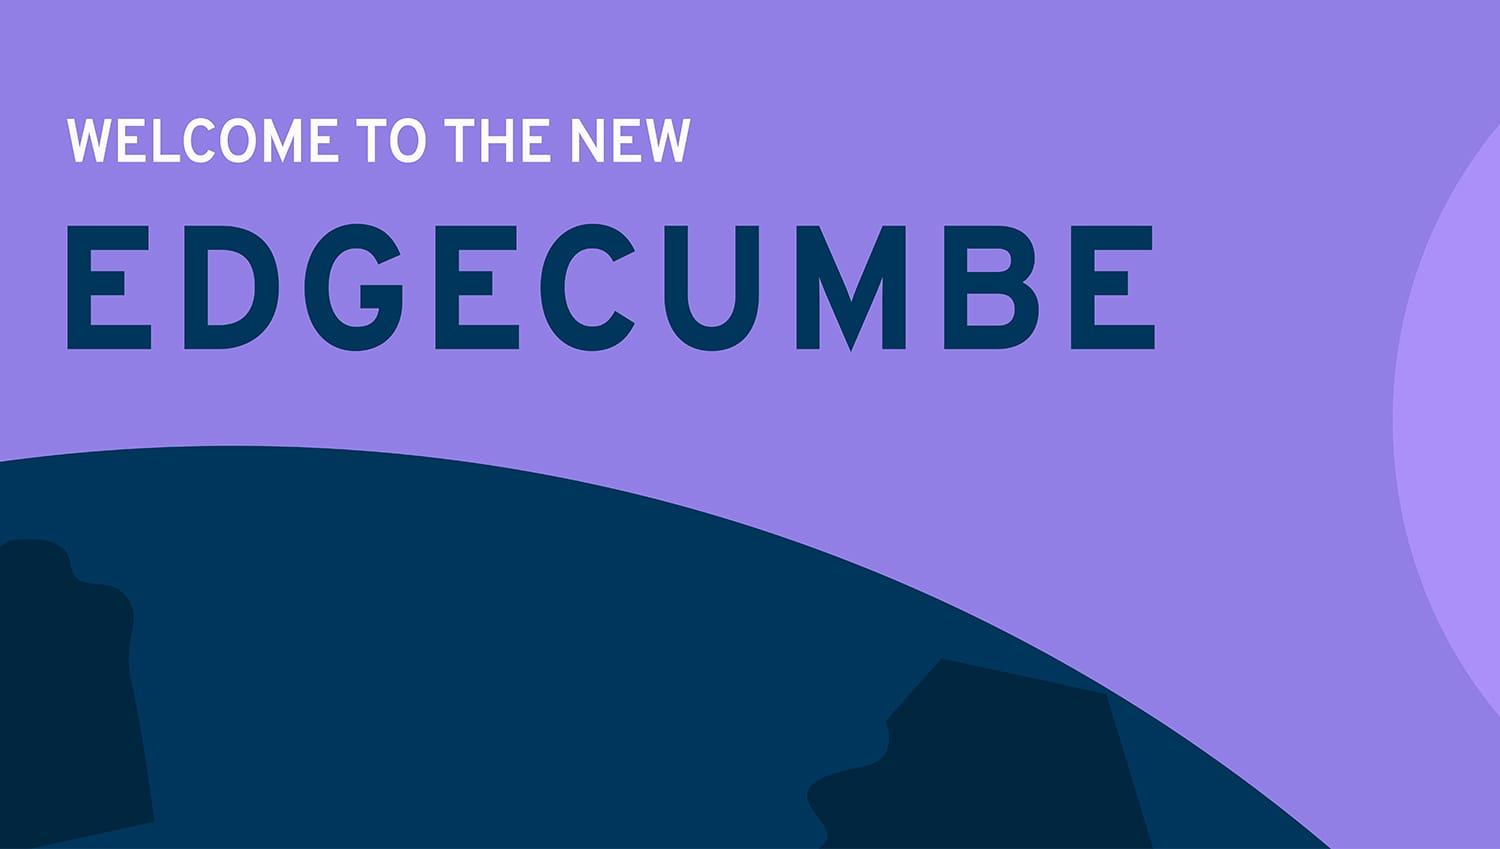 Welcome to the new Edgecumbe